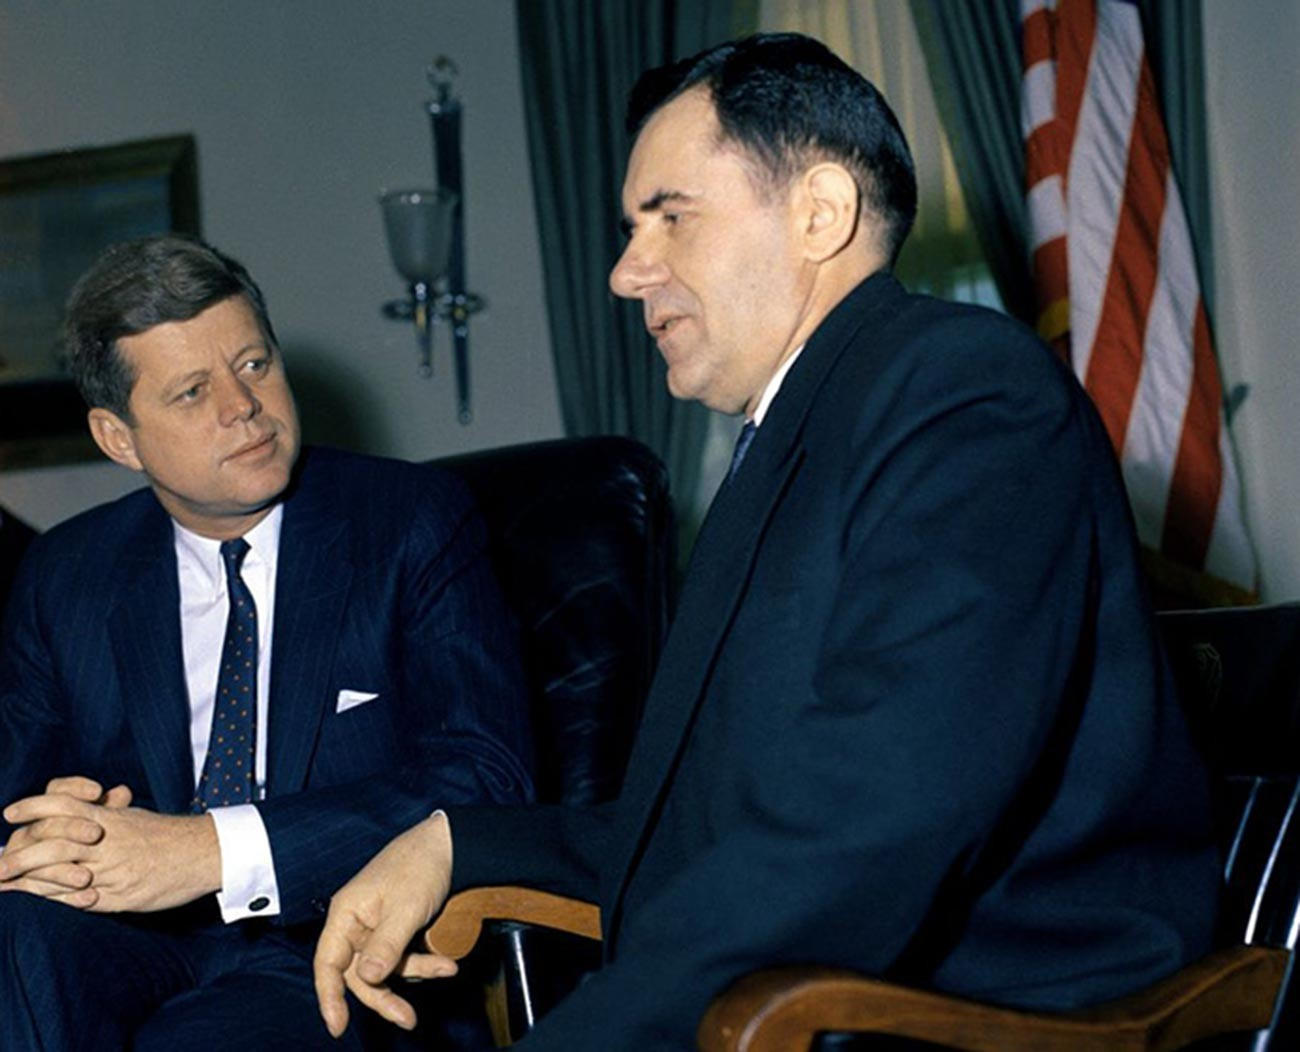 John Kennedy and Andrei Gromyko in the Oval Office at the White House in Washington D.C.